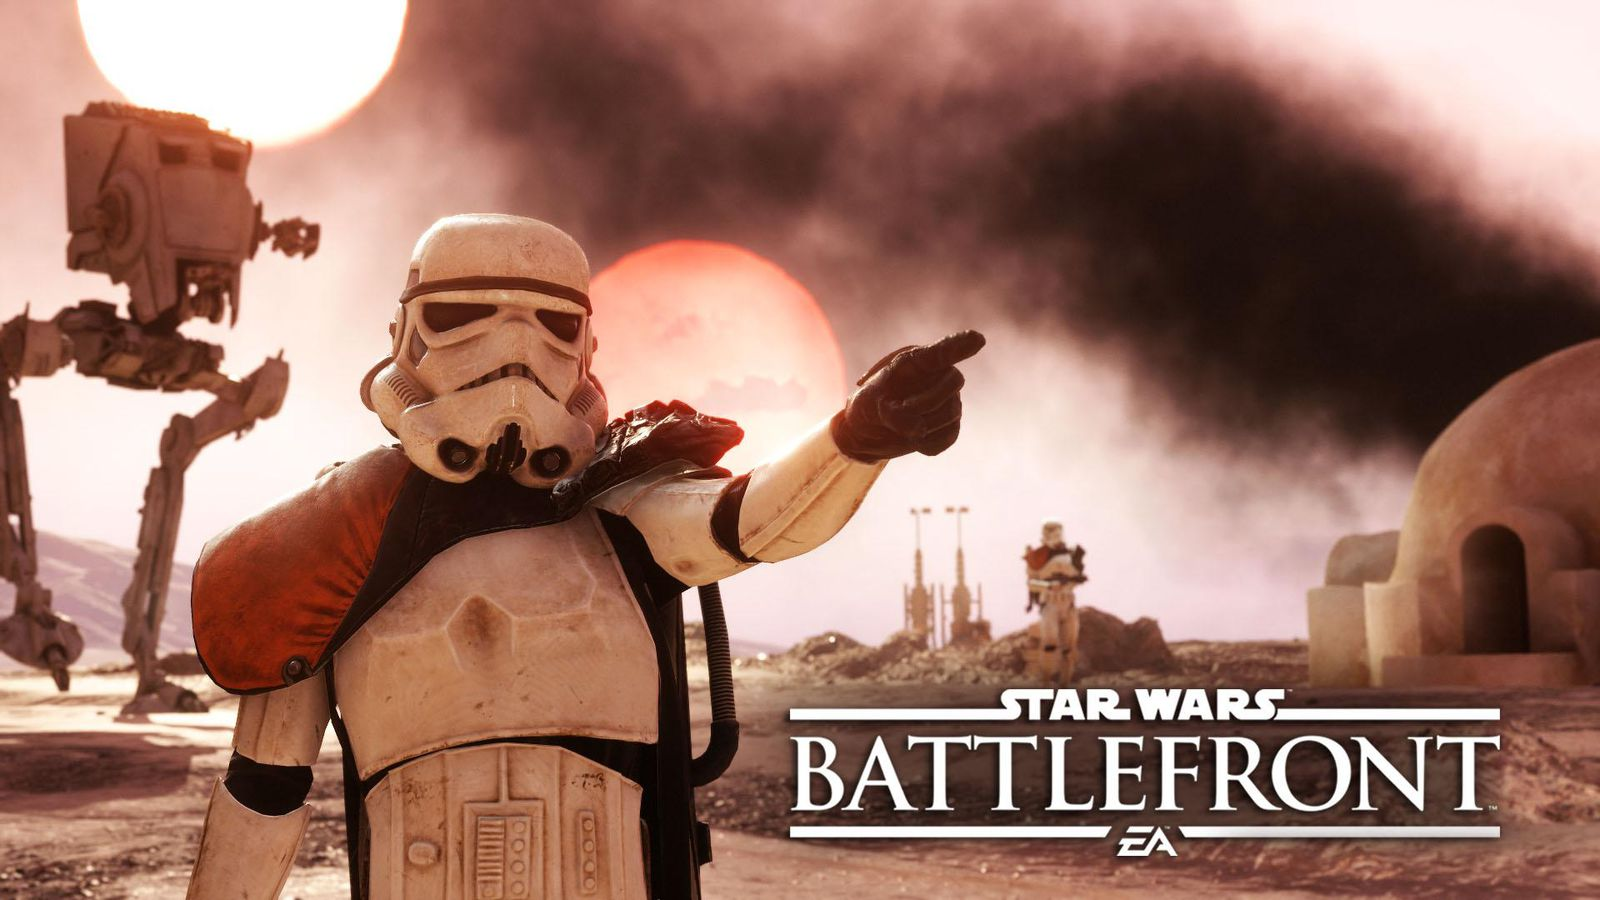 Star Wars Battlefront will be added to EA Access next week